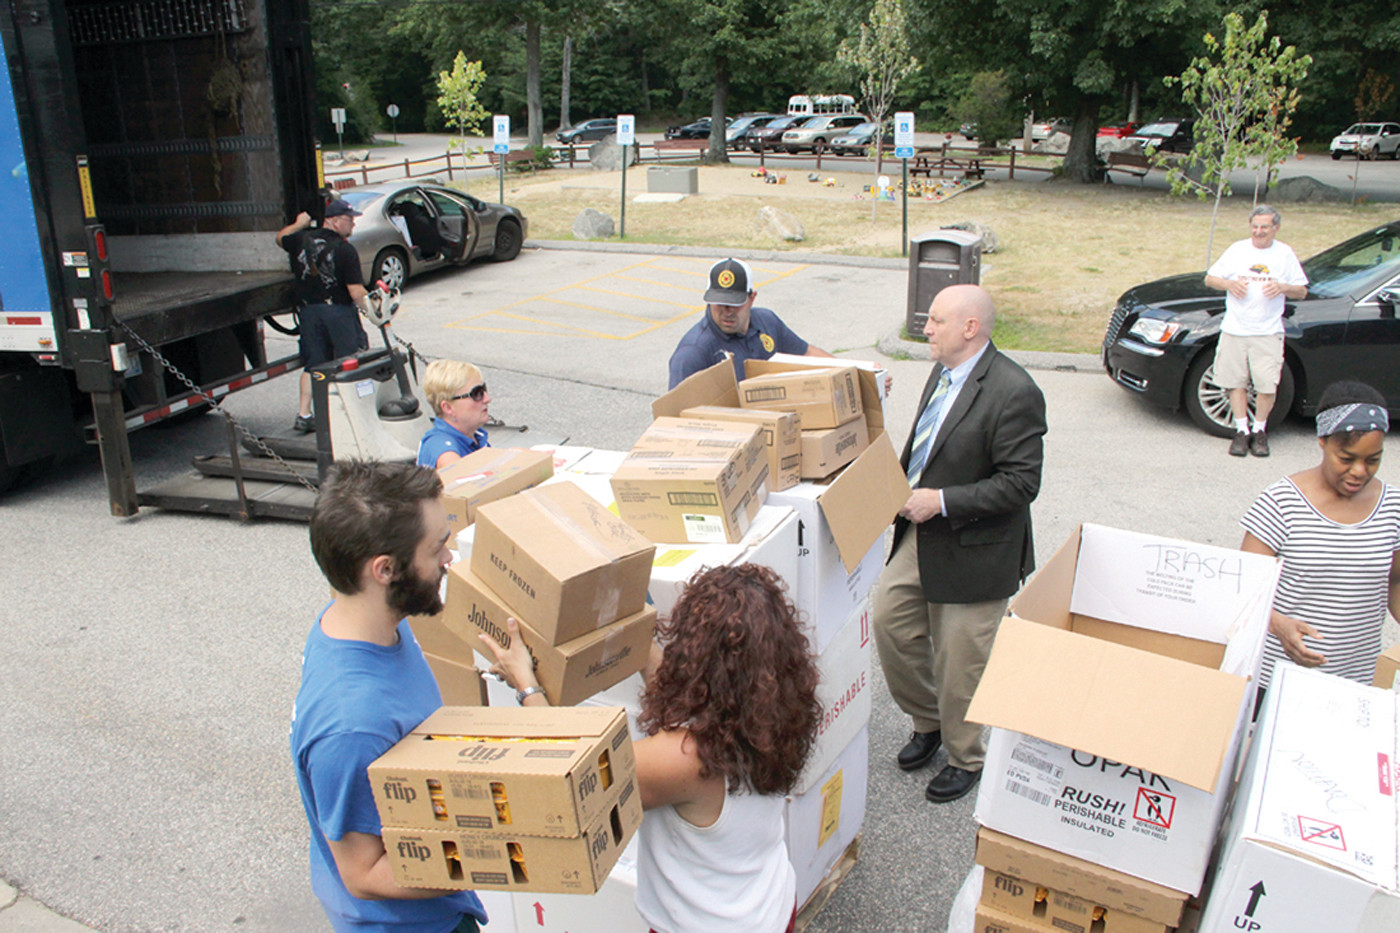 MANY HANDS MAKE LIGHT WORK: Members of area food pantries assisted by Y staff and off-duty firefighters offloaded the food that was delivered to the Y by the Teamsters.